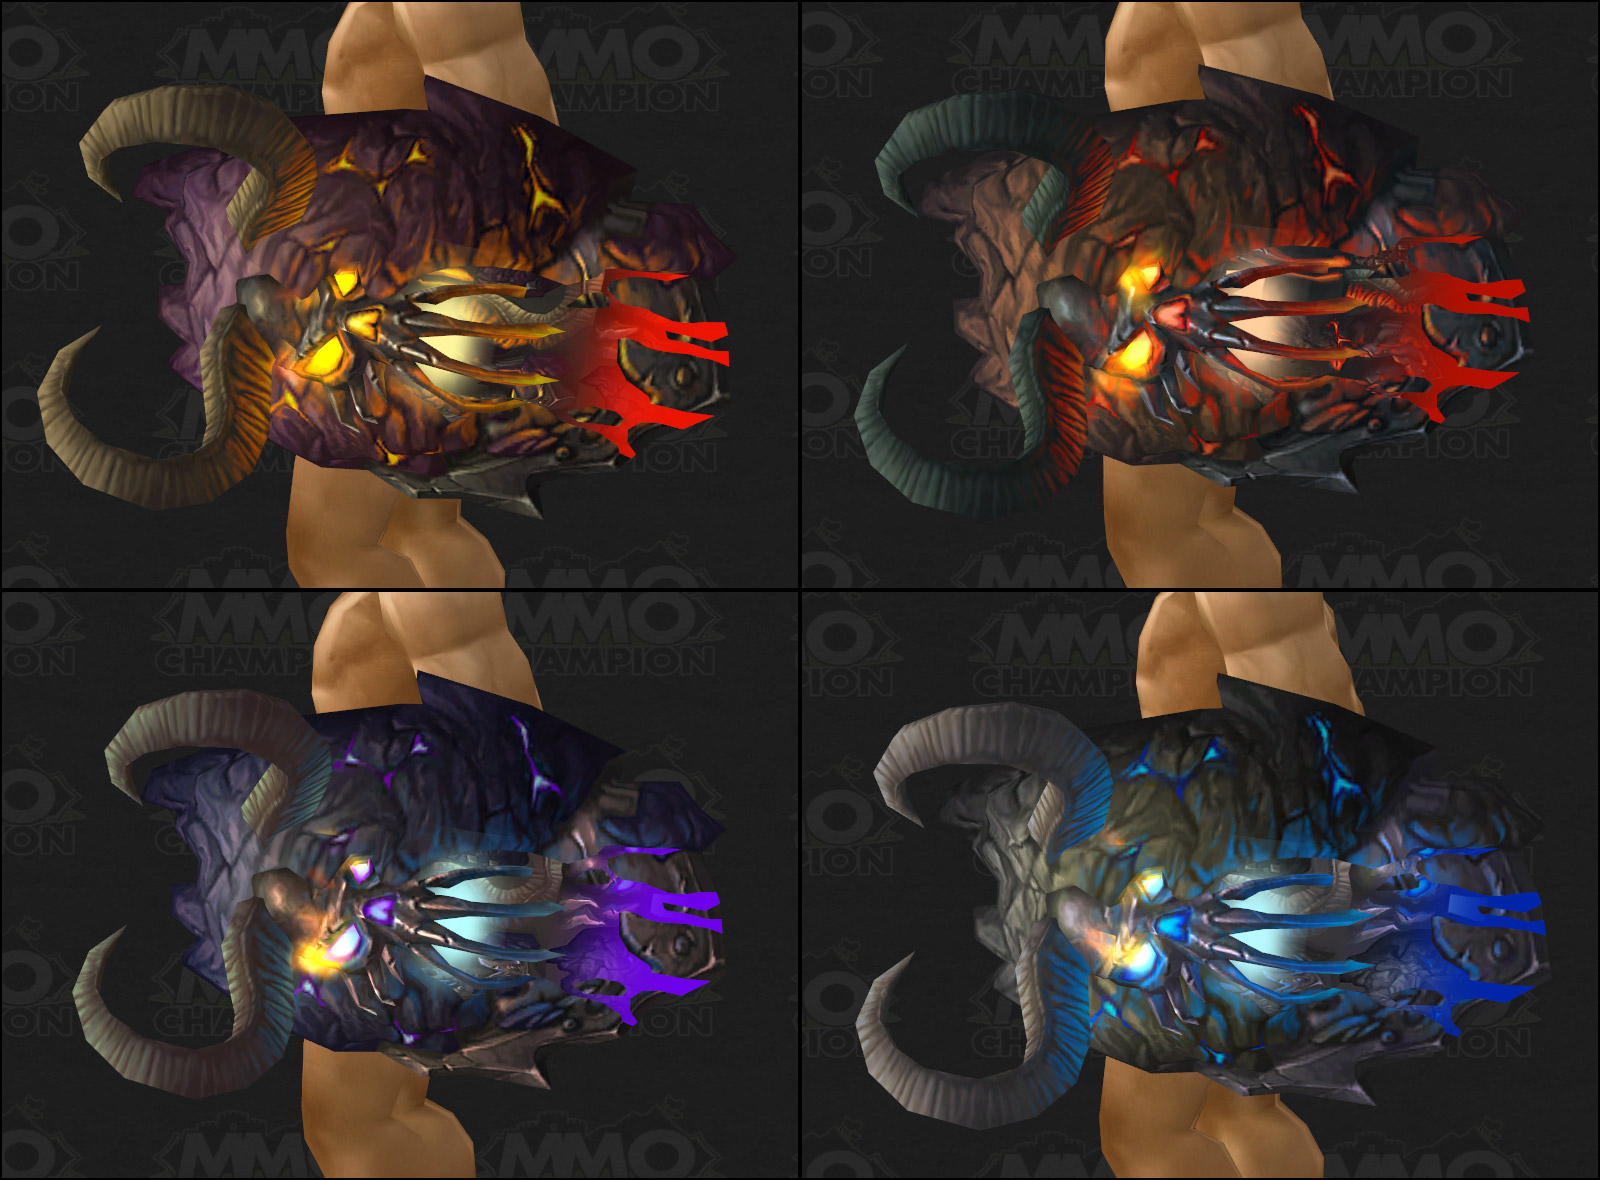 Fist Weapons - World of Warcraft - Wowhead